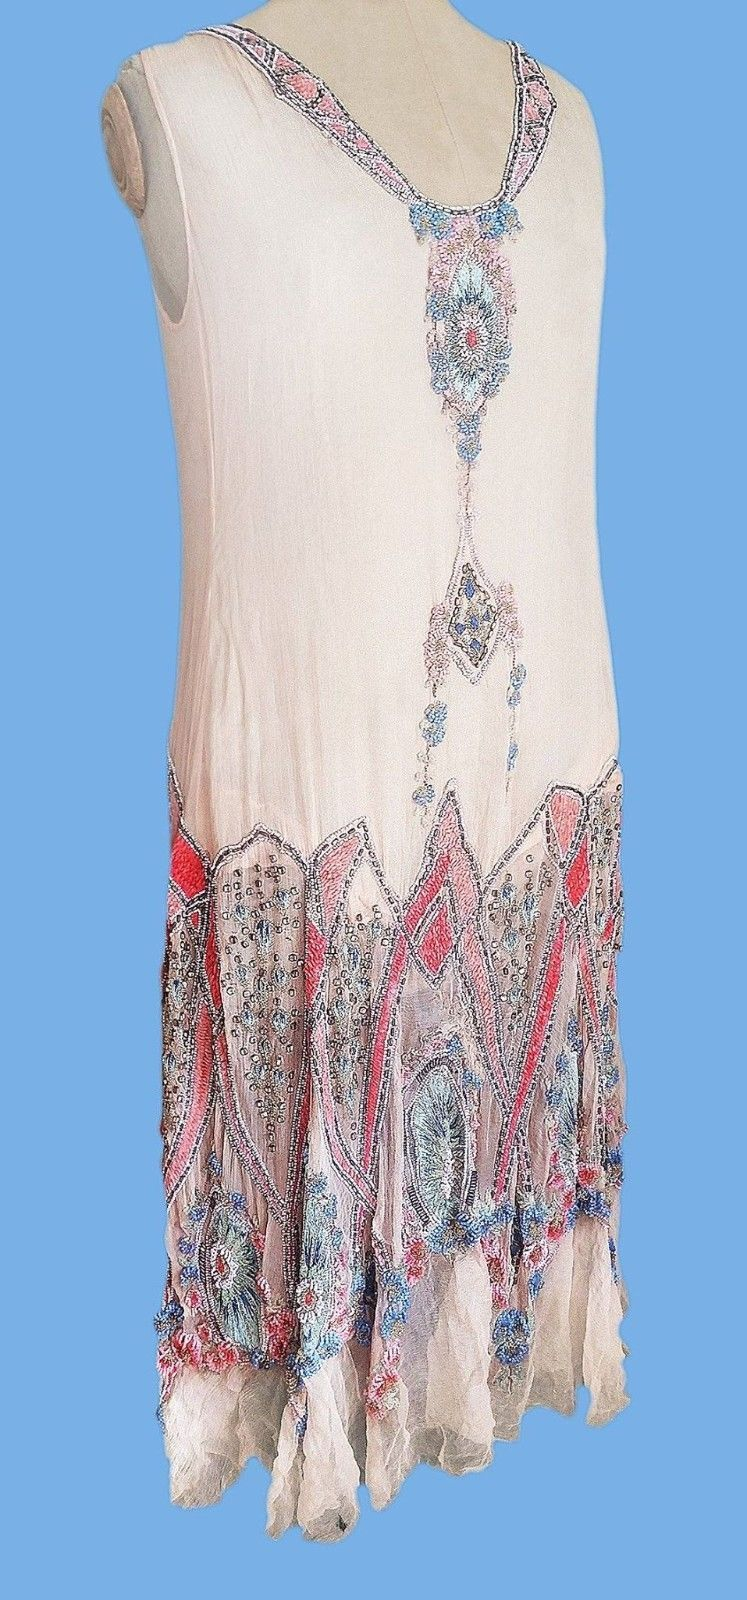 1920's PURE CONFECTION Pastel Beaded and Embroidered Flapper Dress. Back